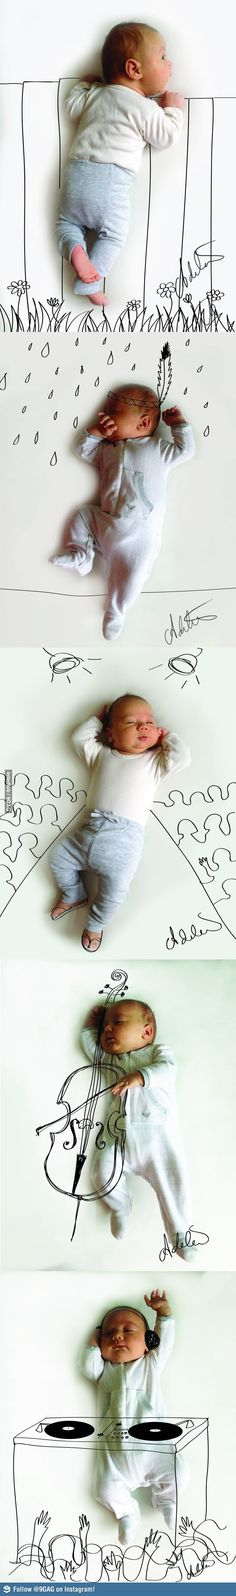 DIY: photographing babies, with your own art - great ideas for the wee ones called When My Baby Dreams by Adele Enersen